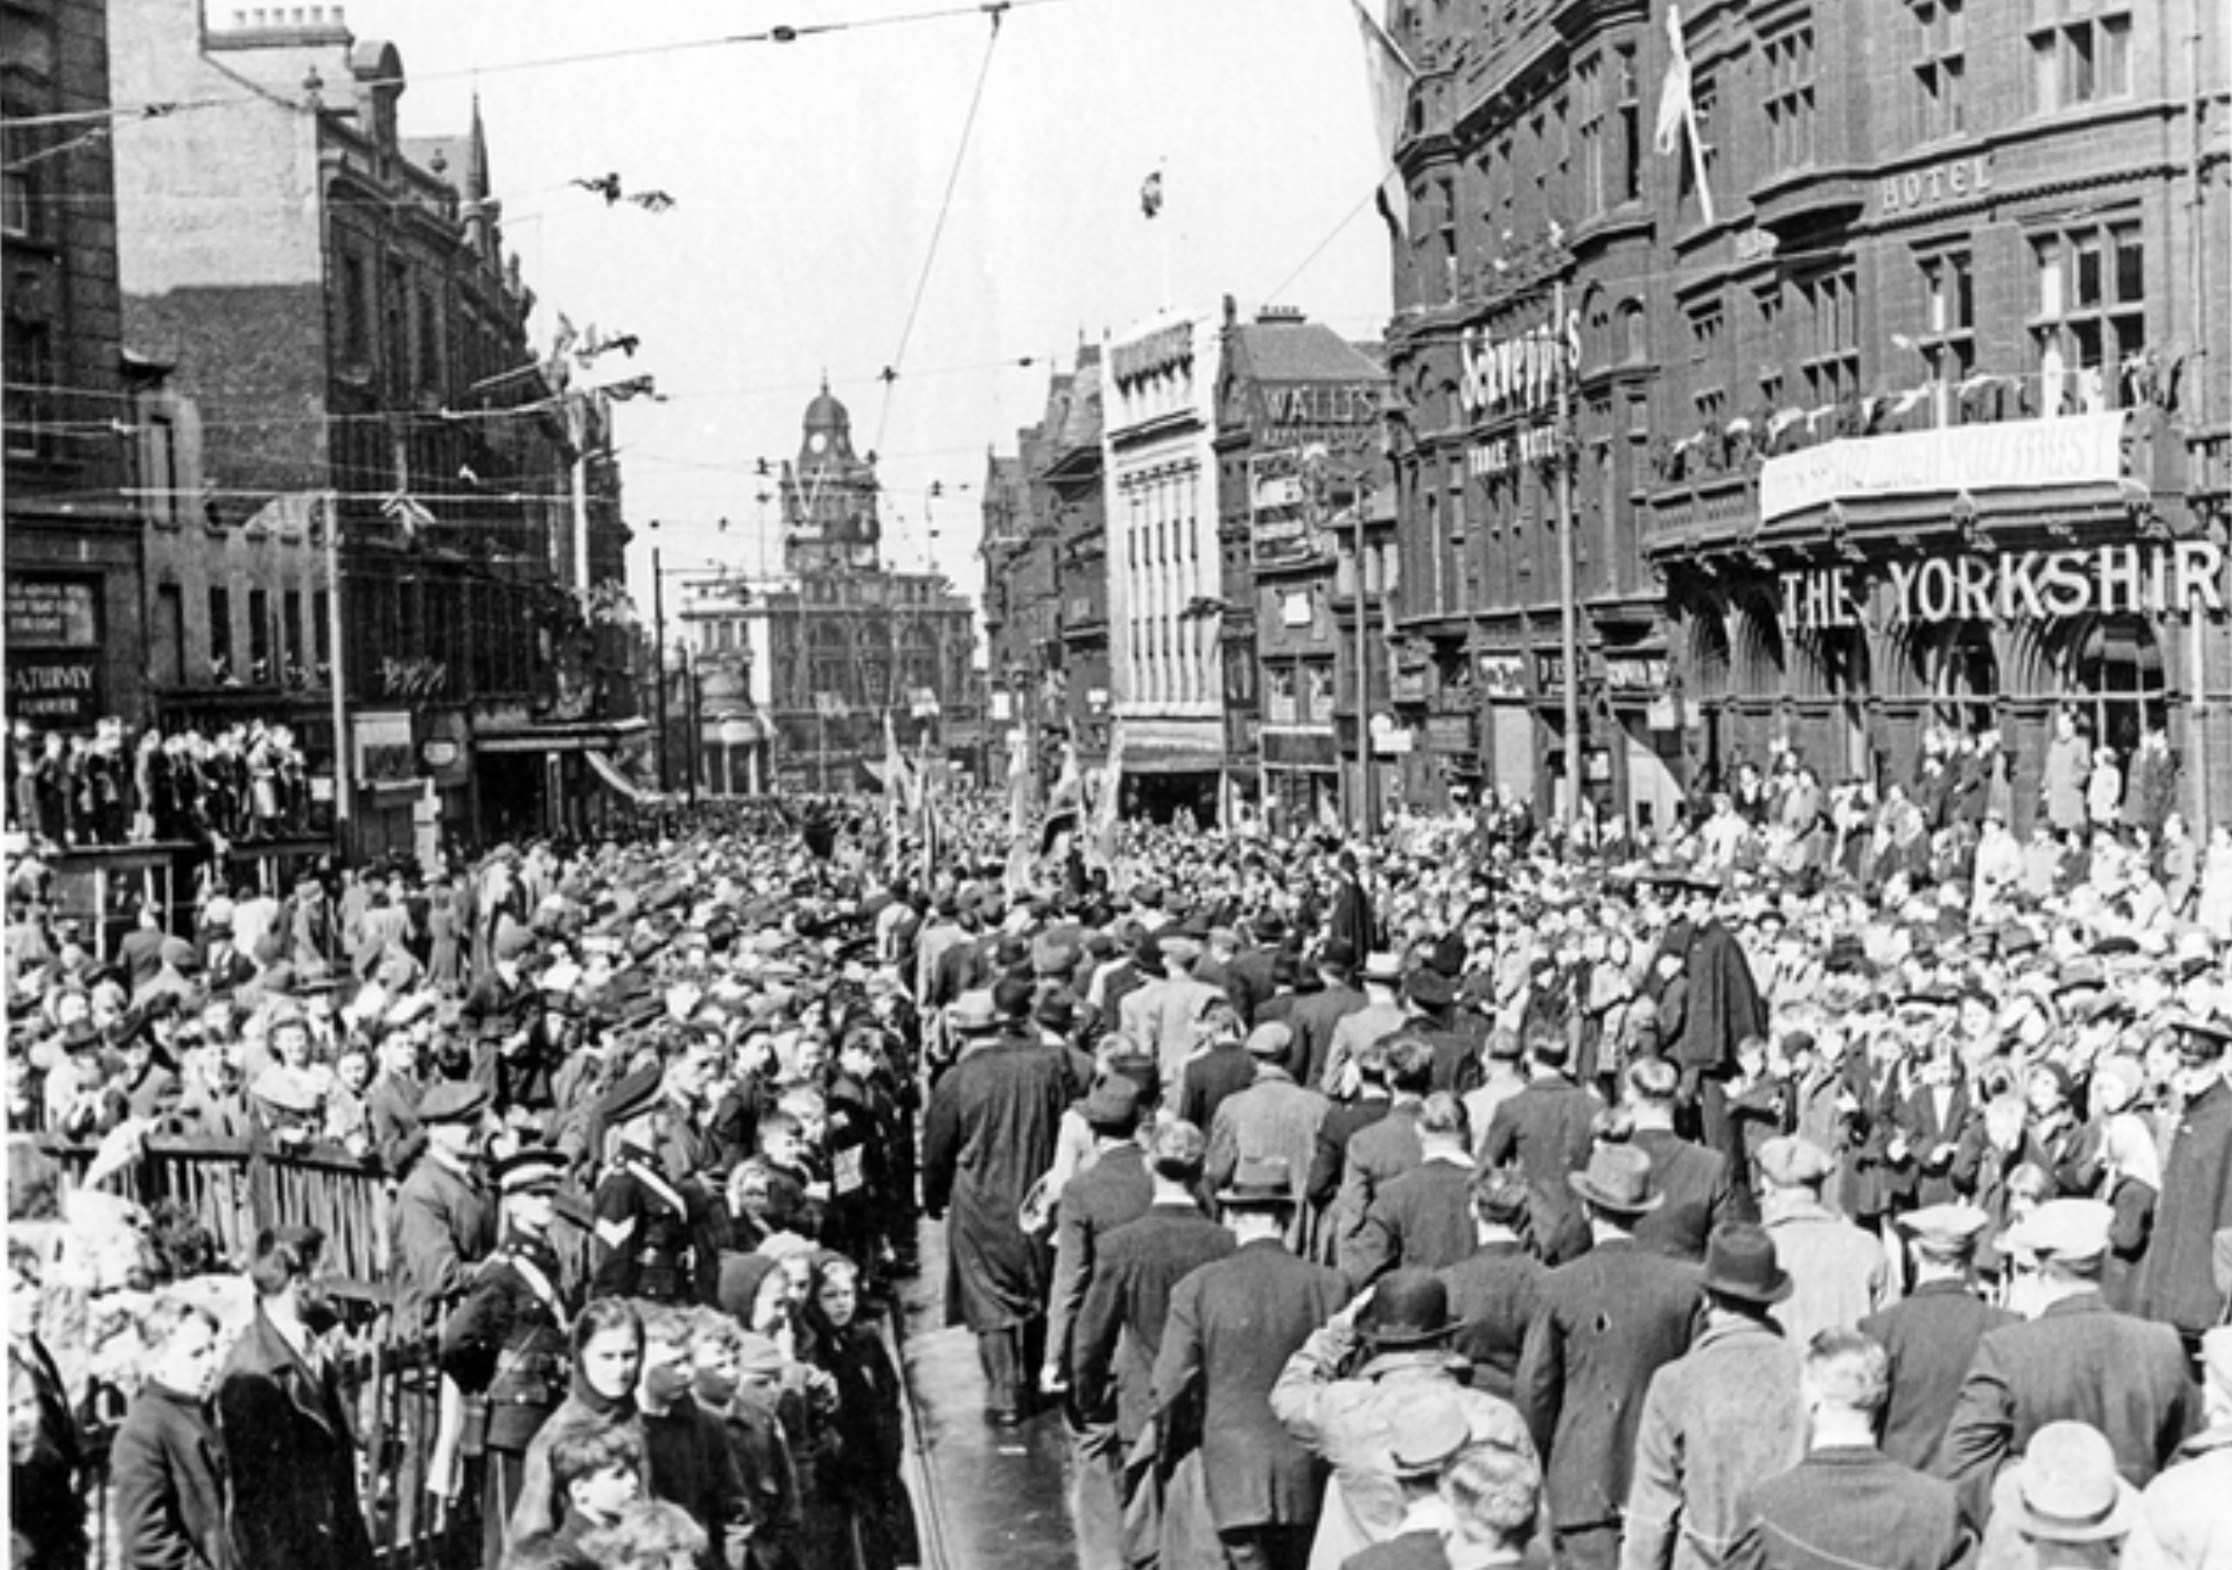 VE Day in Sheffield